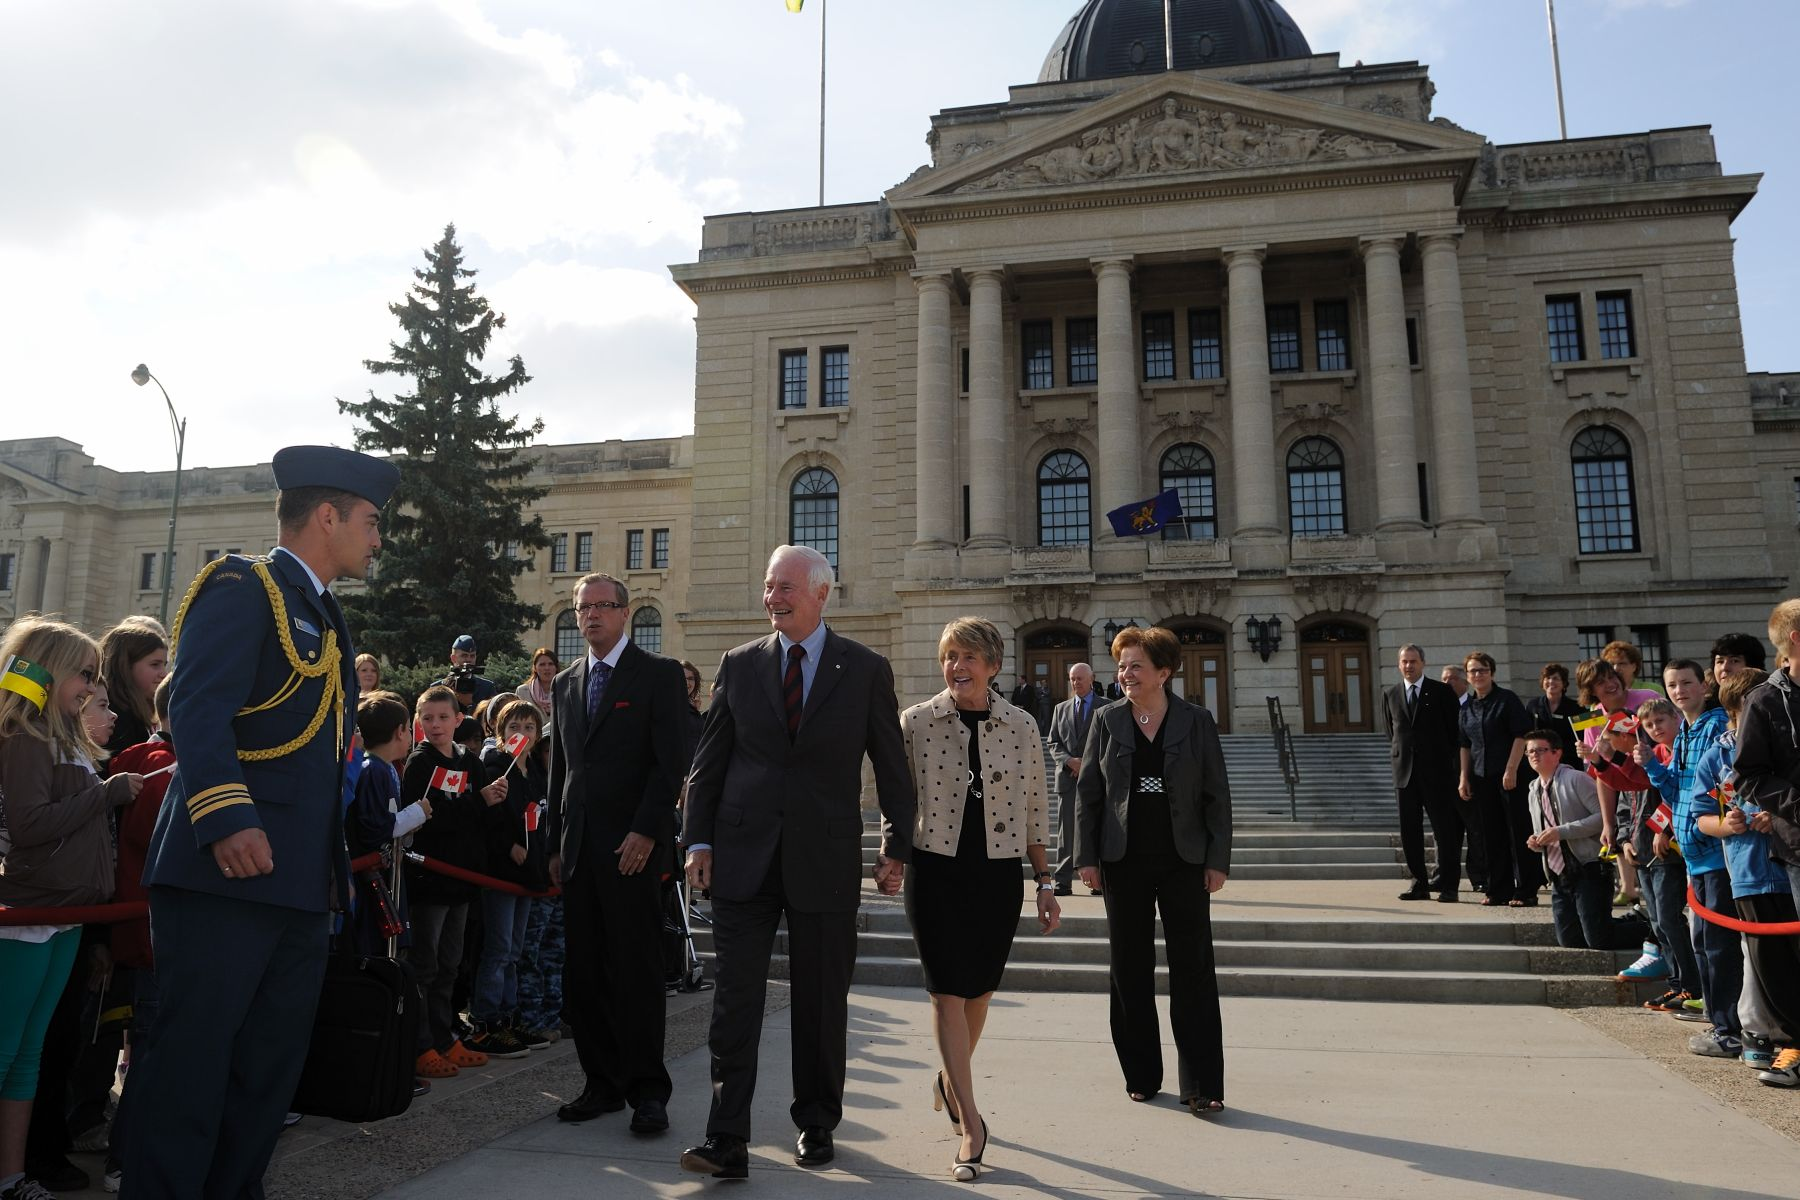 During a welcoming ceremony at the Legislative Assembly in Regina, Their Excellencies the Right Honourable David Johnston, Governor General of Canada, and Mrs. Sharon Johnston were greeted by the Honourable Brad Wall, Premier of Saskatchewan.